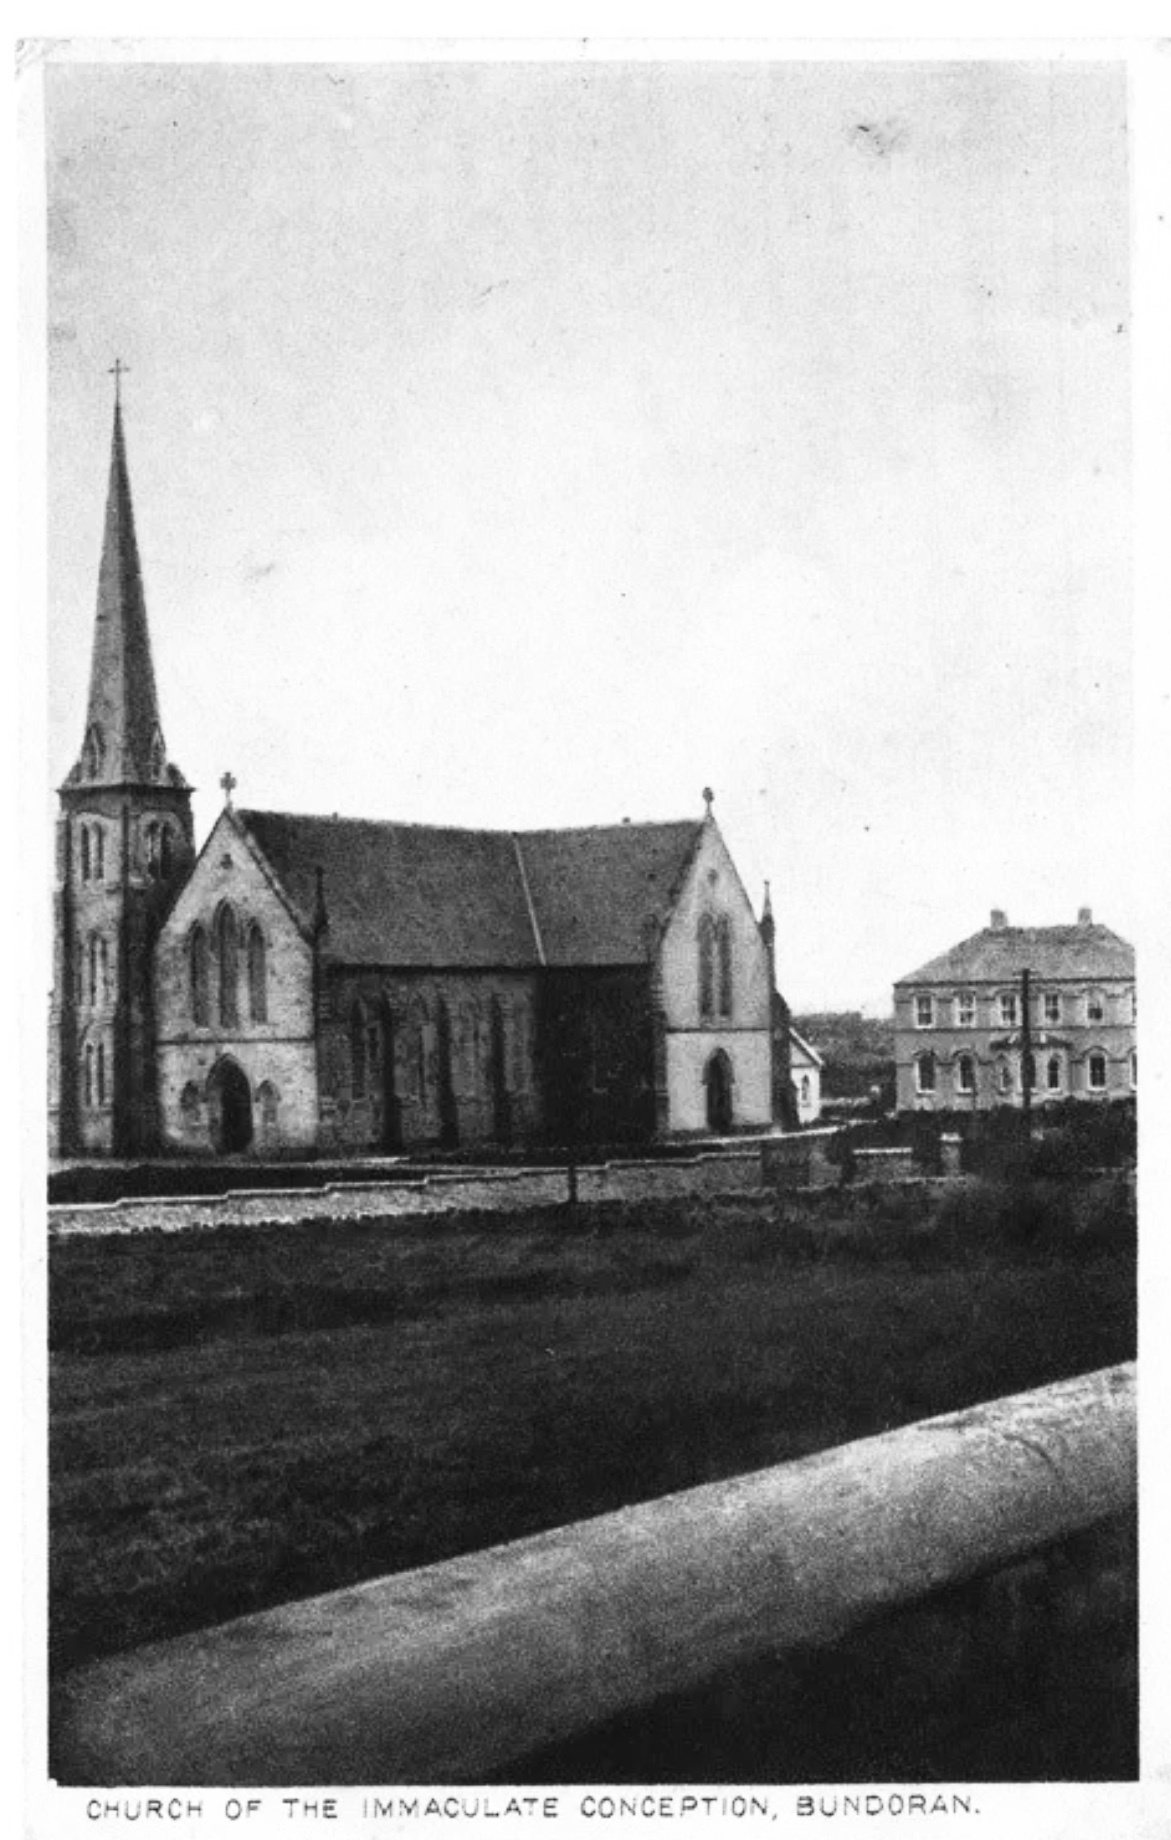 Our Lady Star of the Sea Church Bundoran previously known as St Mary's and Church of the Immaculate Conception